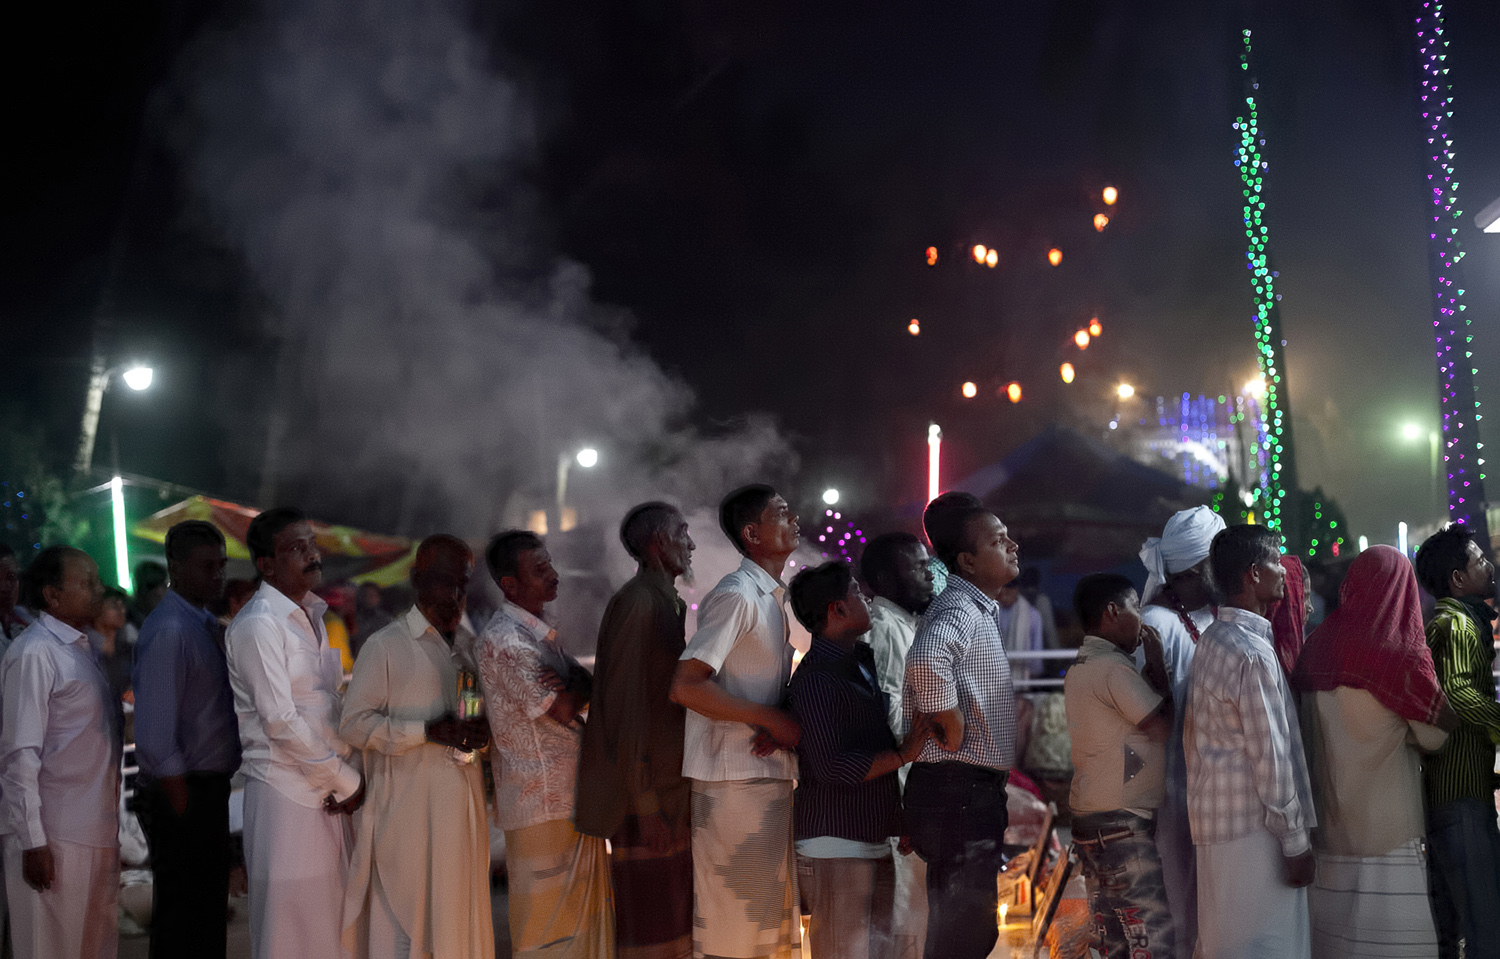 Bangladeshi Hindus and Muslims celebrate the the 124th Lalon Shah festival